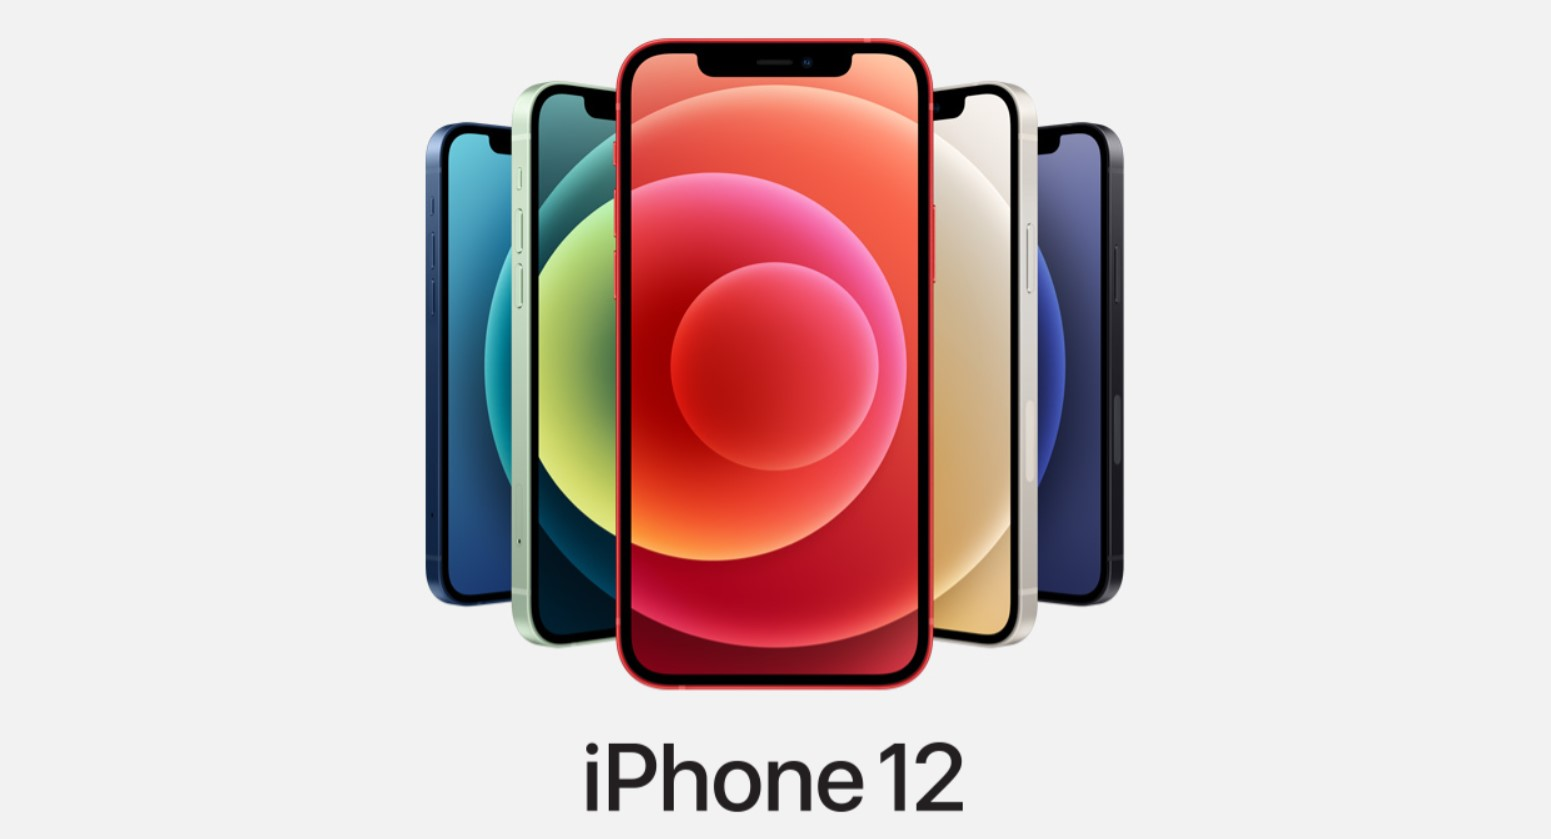 Apple iPhone 12 live wallpapers download